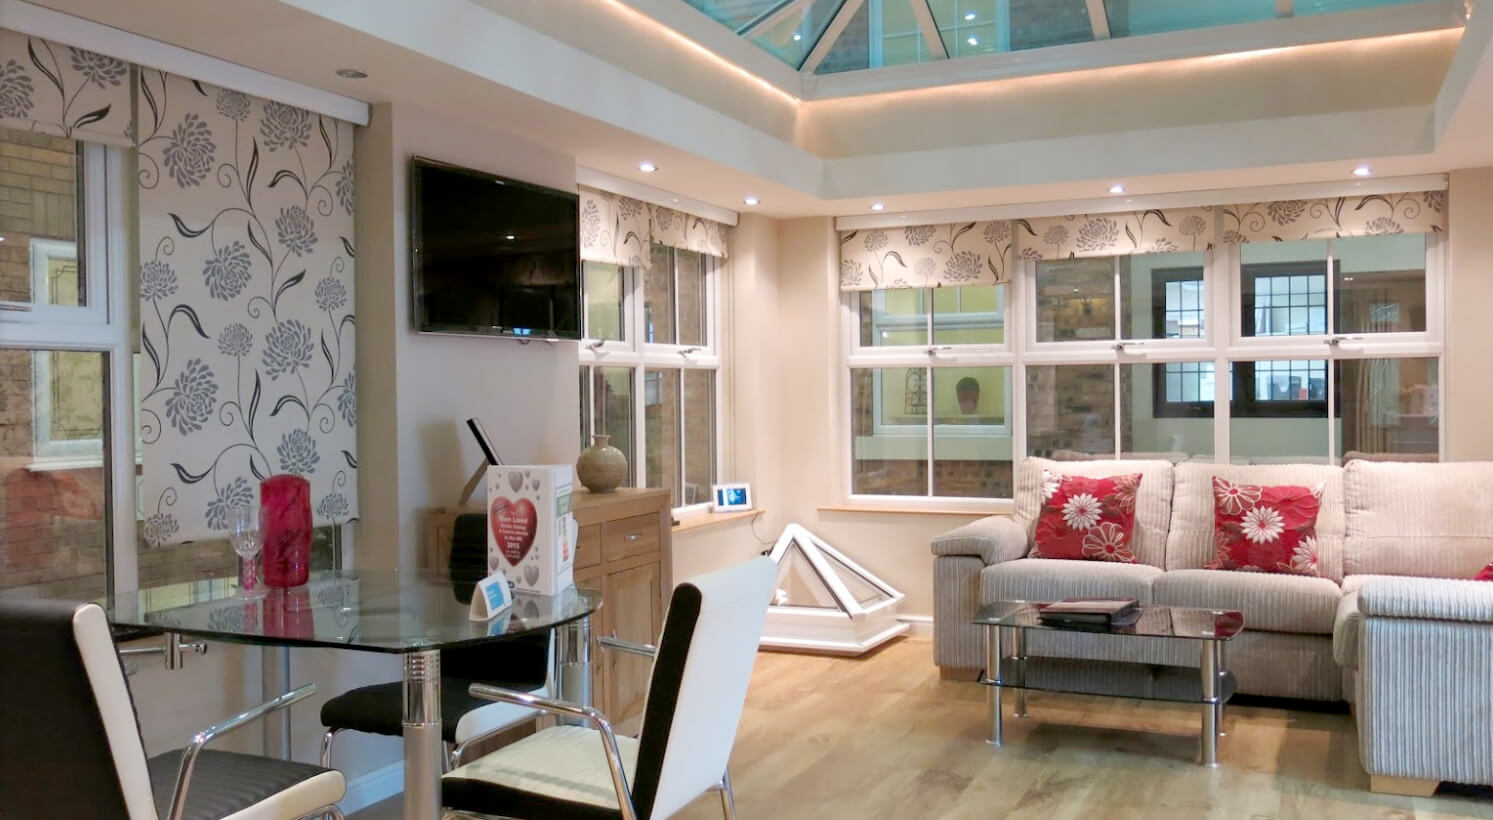 How Can Double Glazing Actually Improve Your Home?